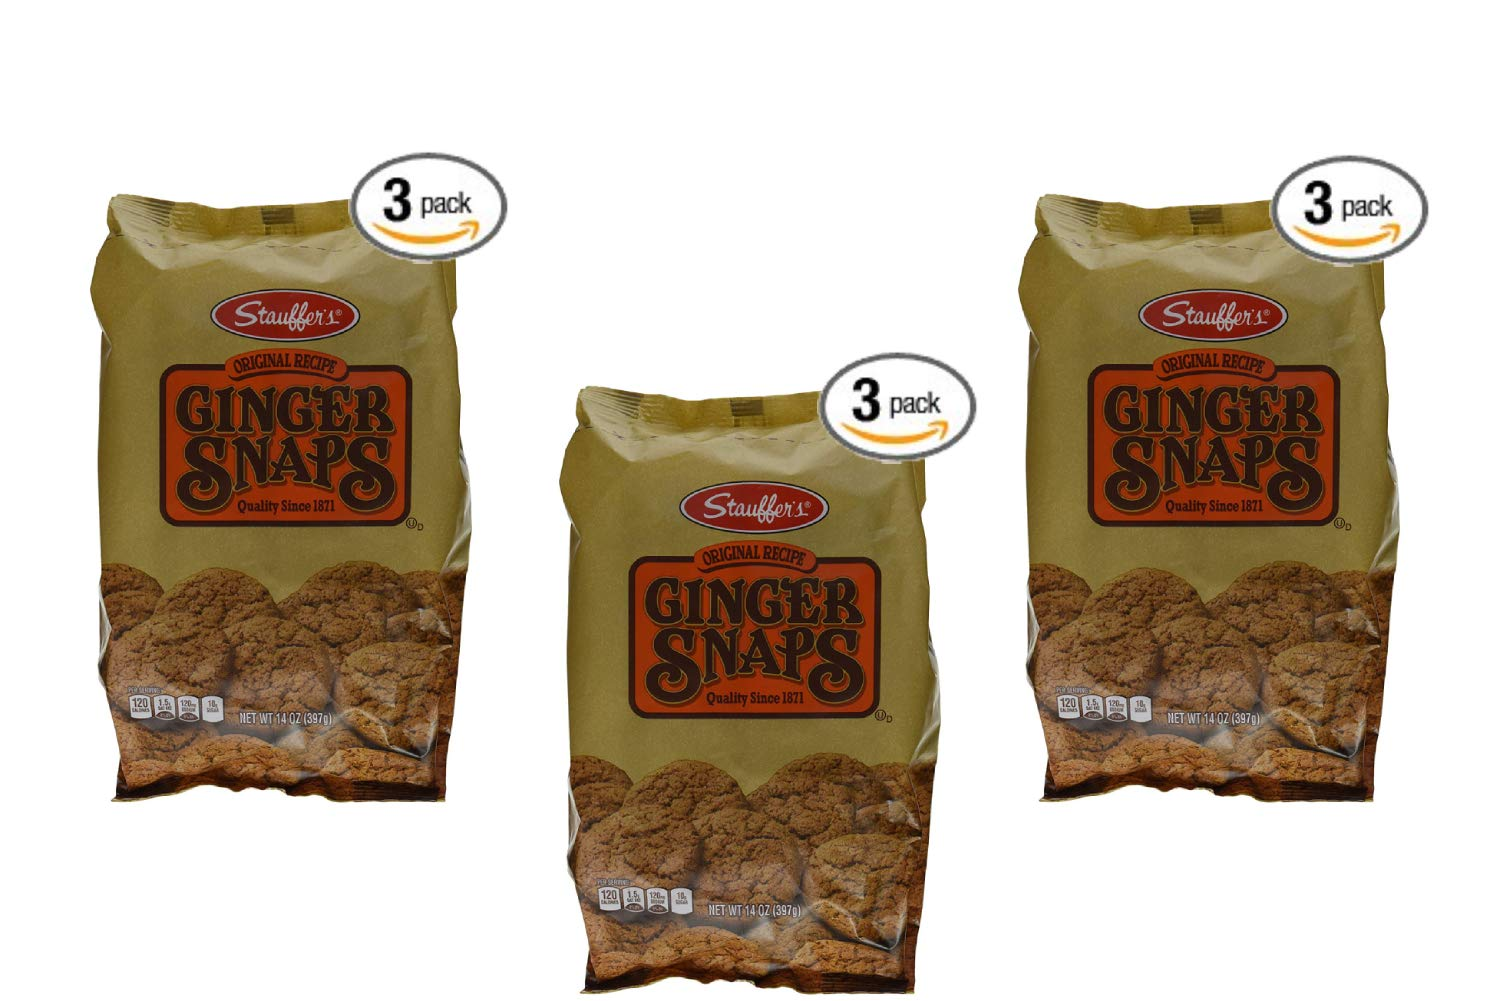 Stauffers Cookie Ginger Snap, Original, 14 Ounce (Pack of 3) (3 Pack)